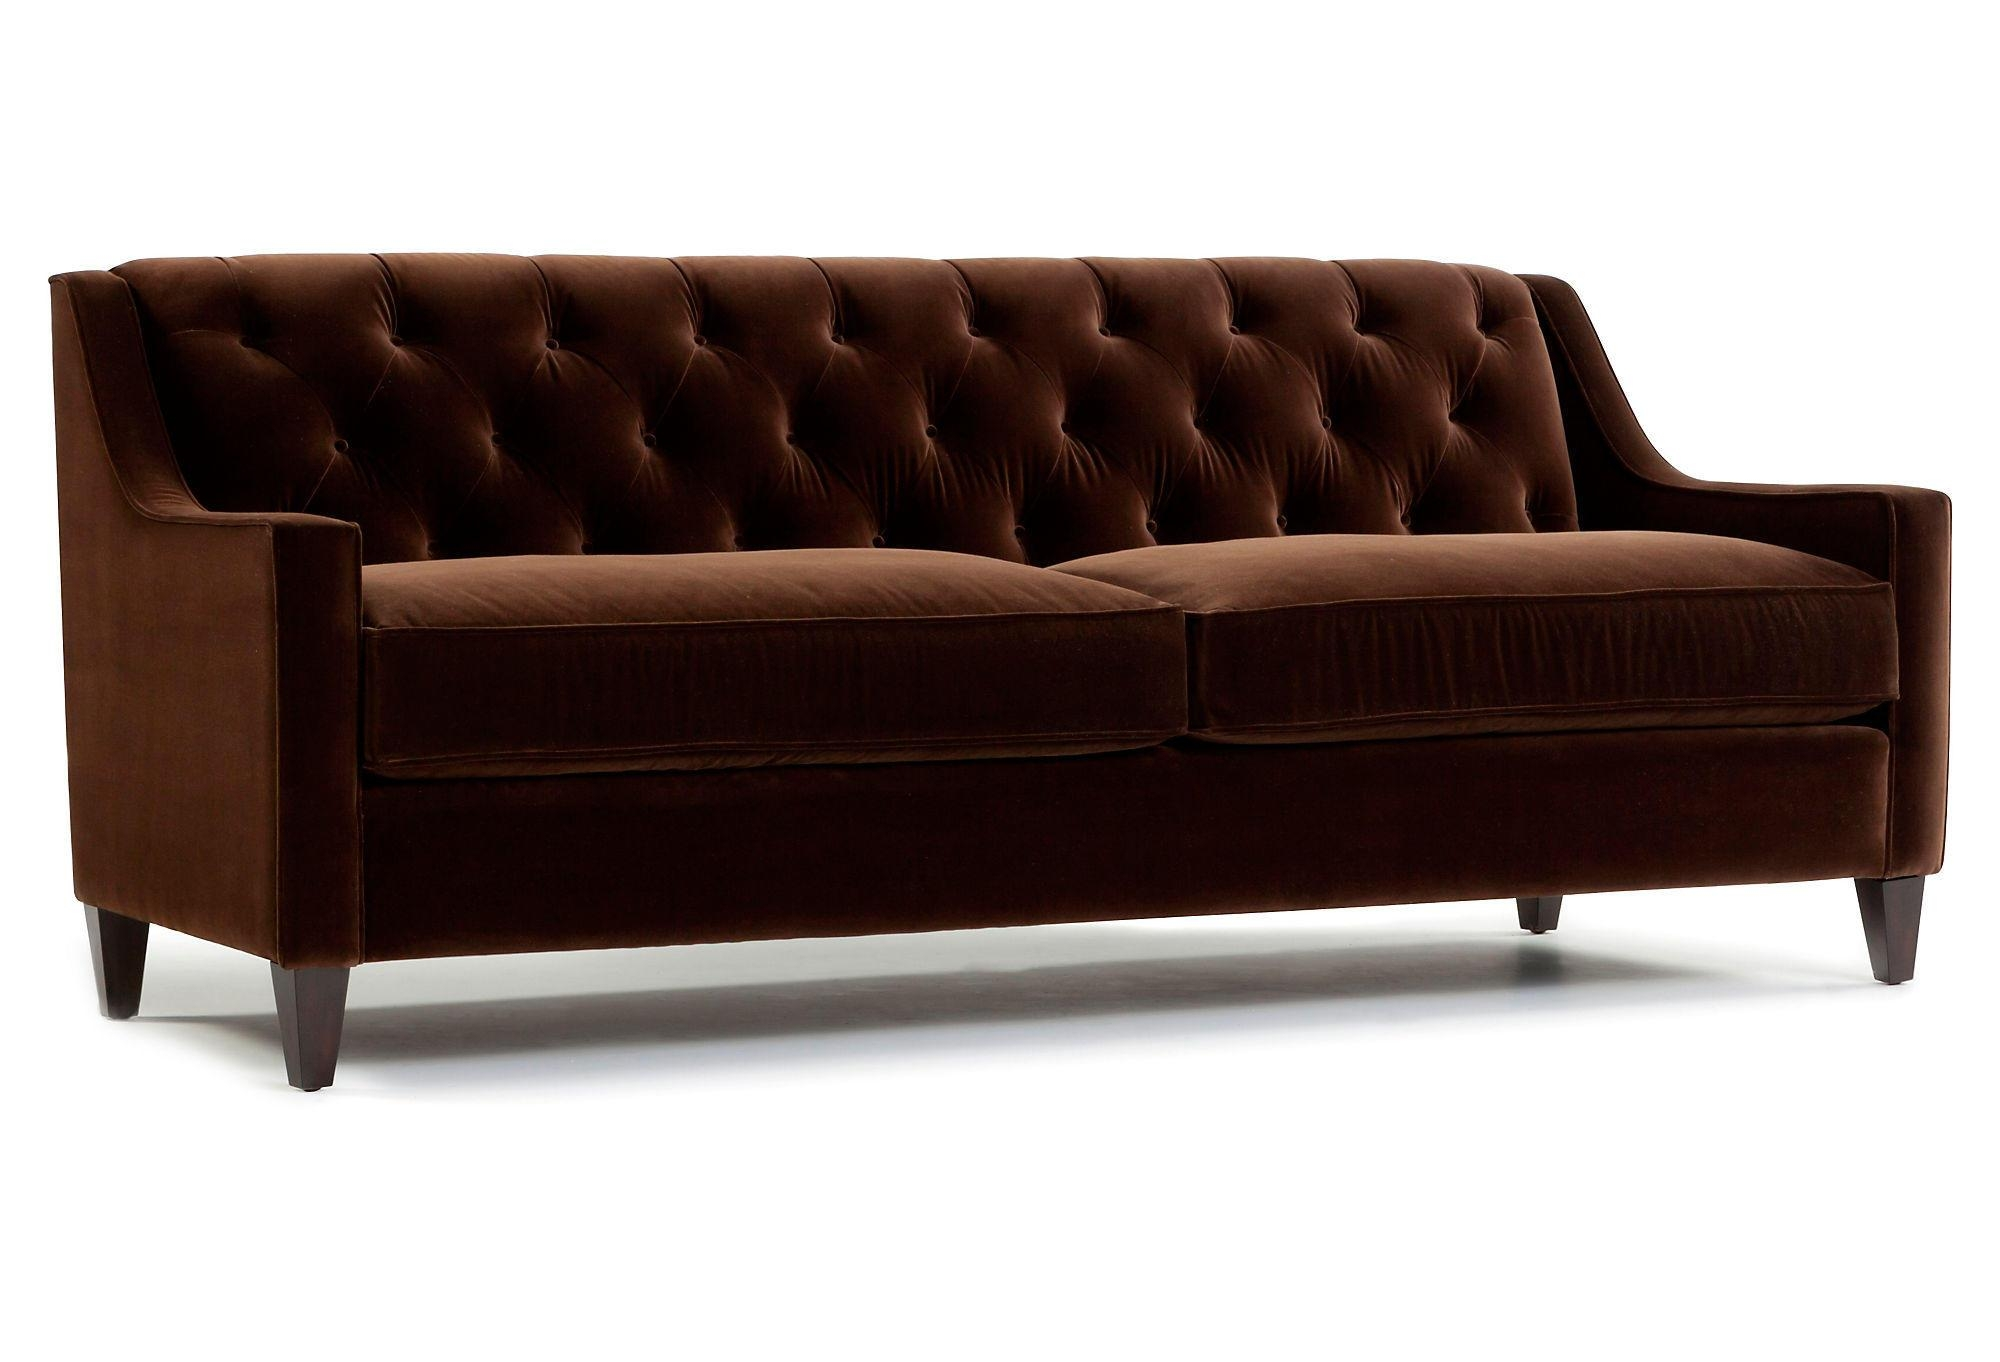 Velvet Tufted Sofa. Abbyson Living Claridge Steel Blue Velvet pertaining to Brown Tufted Sofas